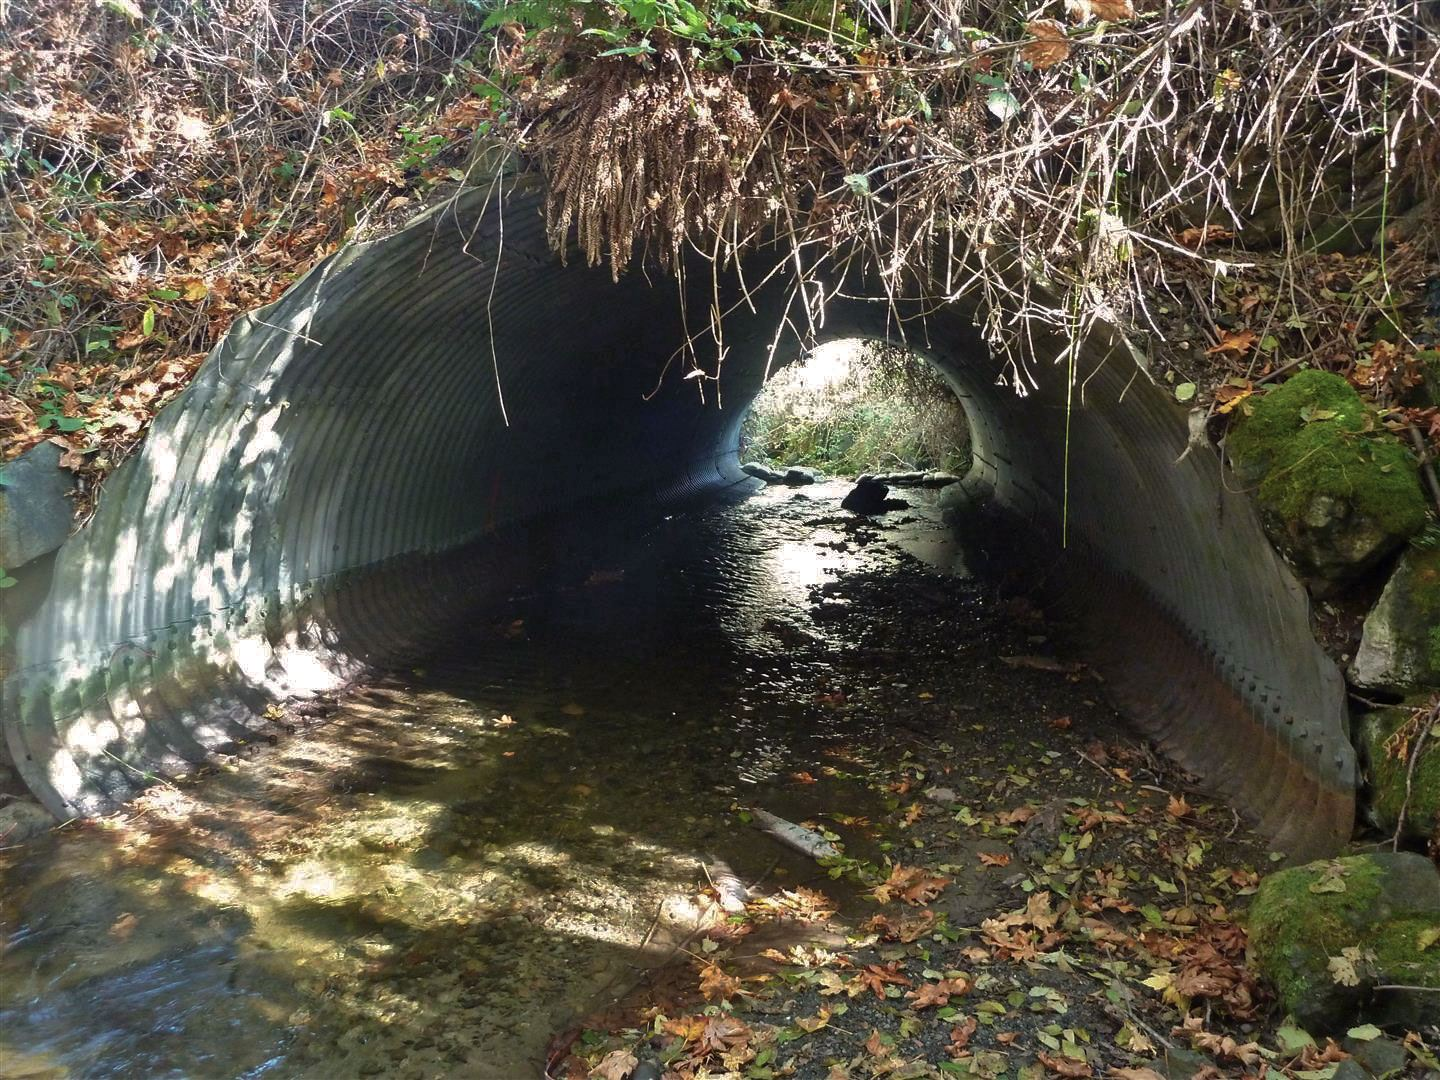 A view through the culvert before construction.